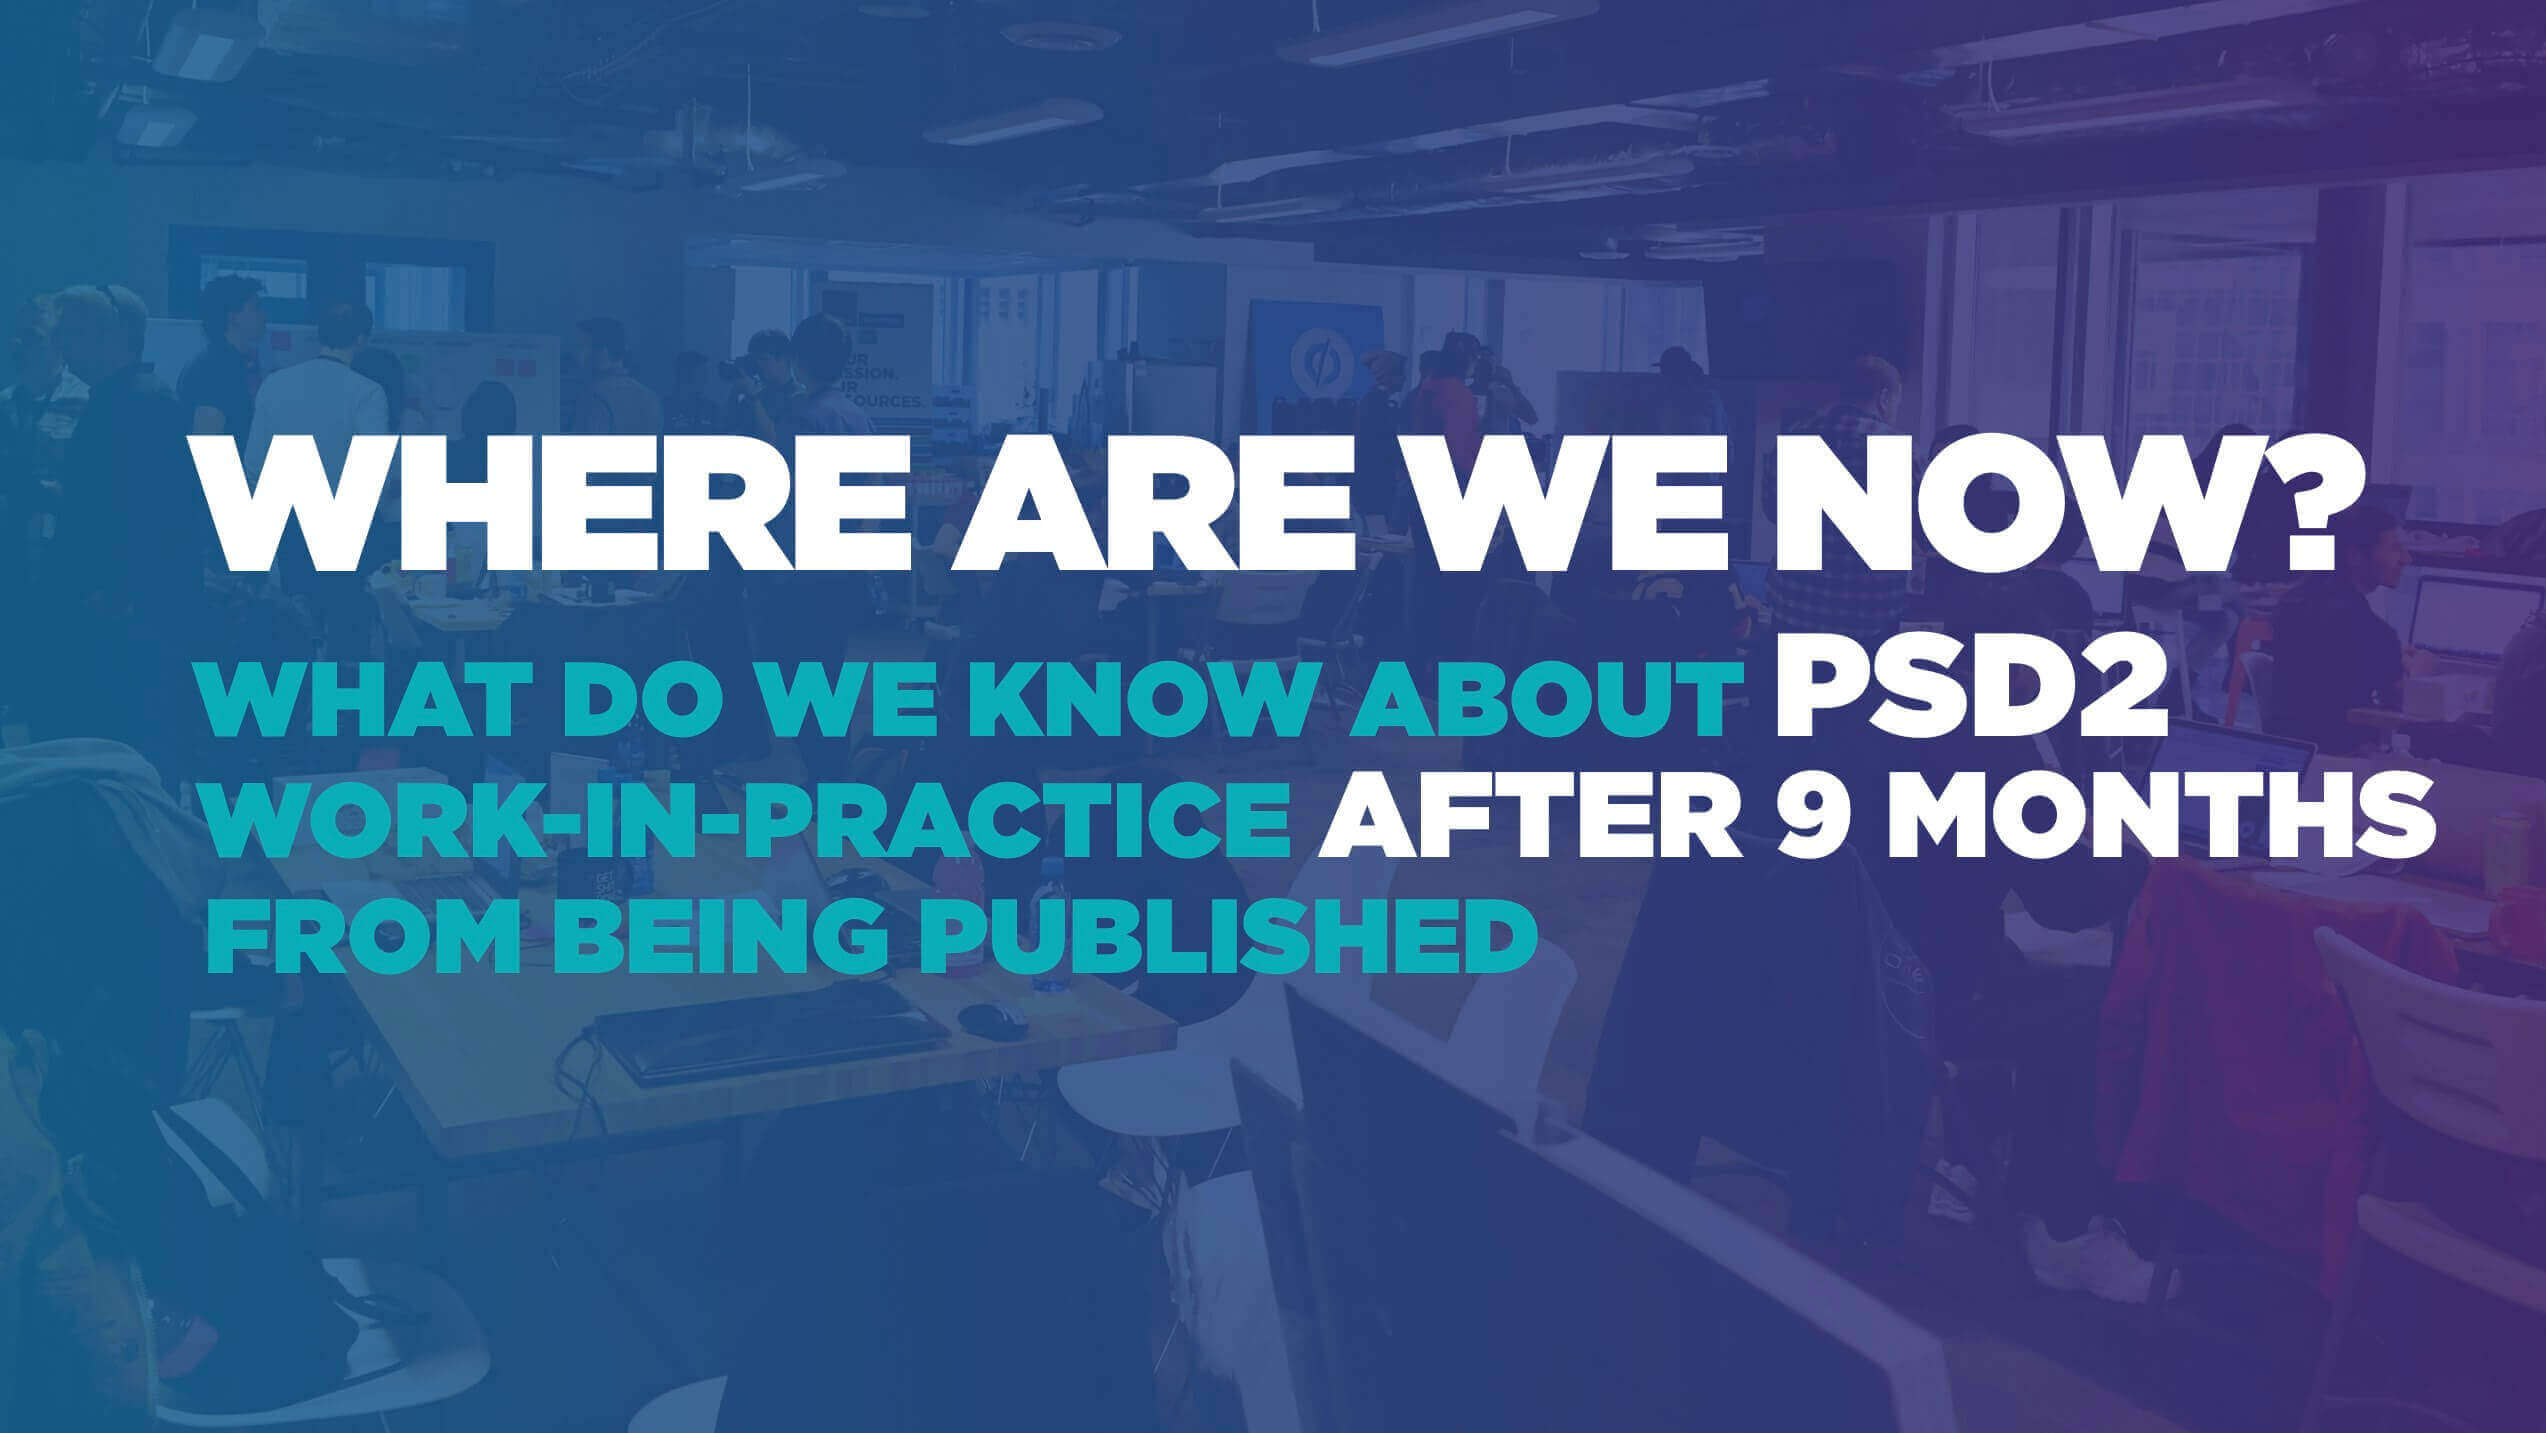 Where are we now? After 9 months PSD2 being  published